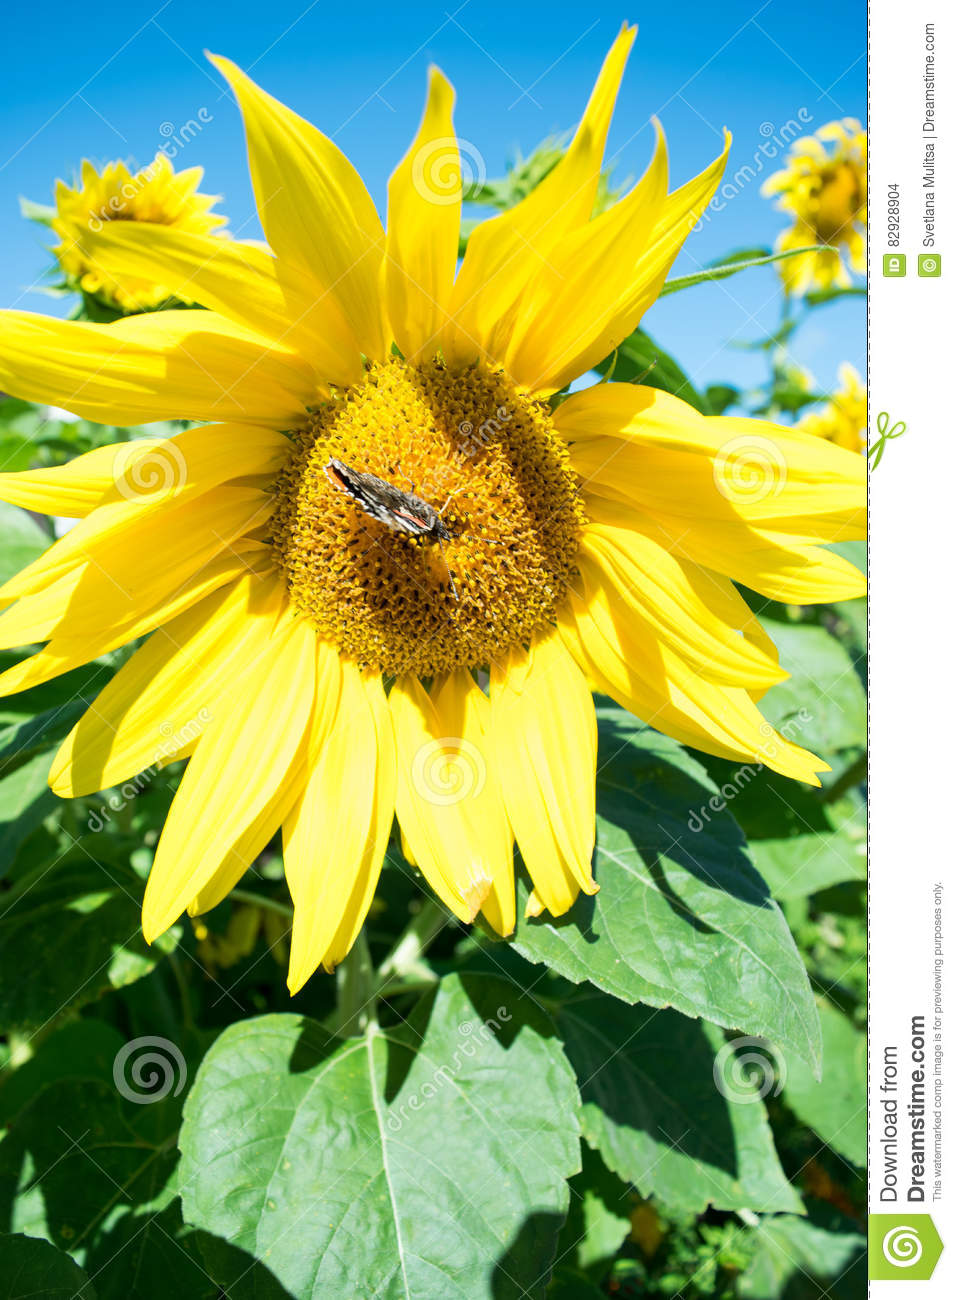 Butterfly and bright yellow blossoming sunflower